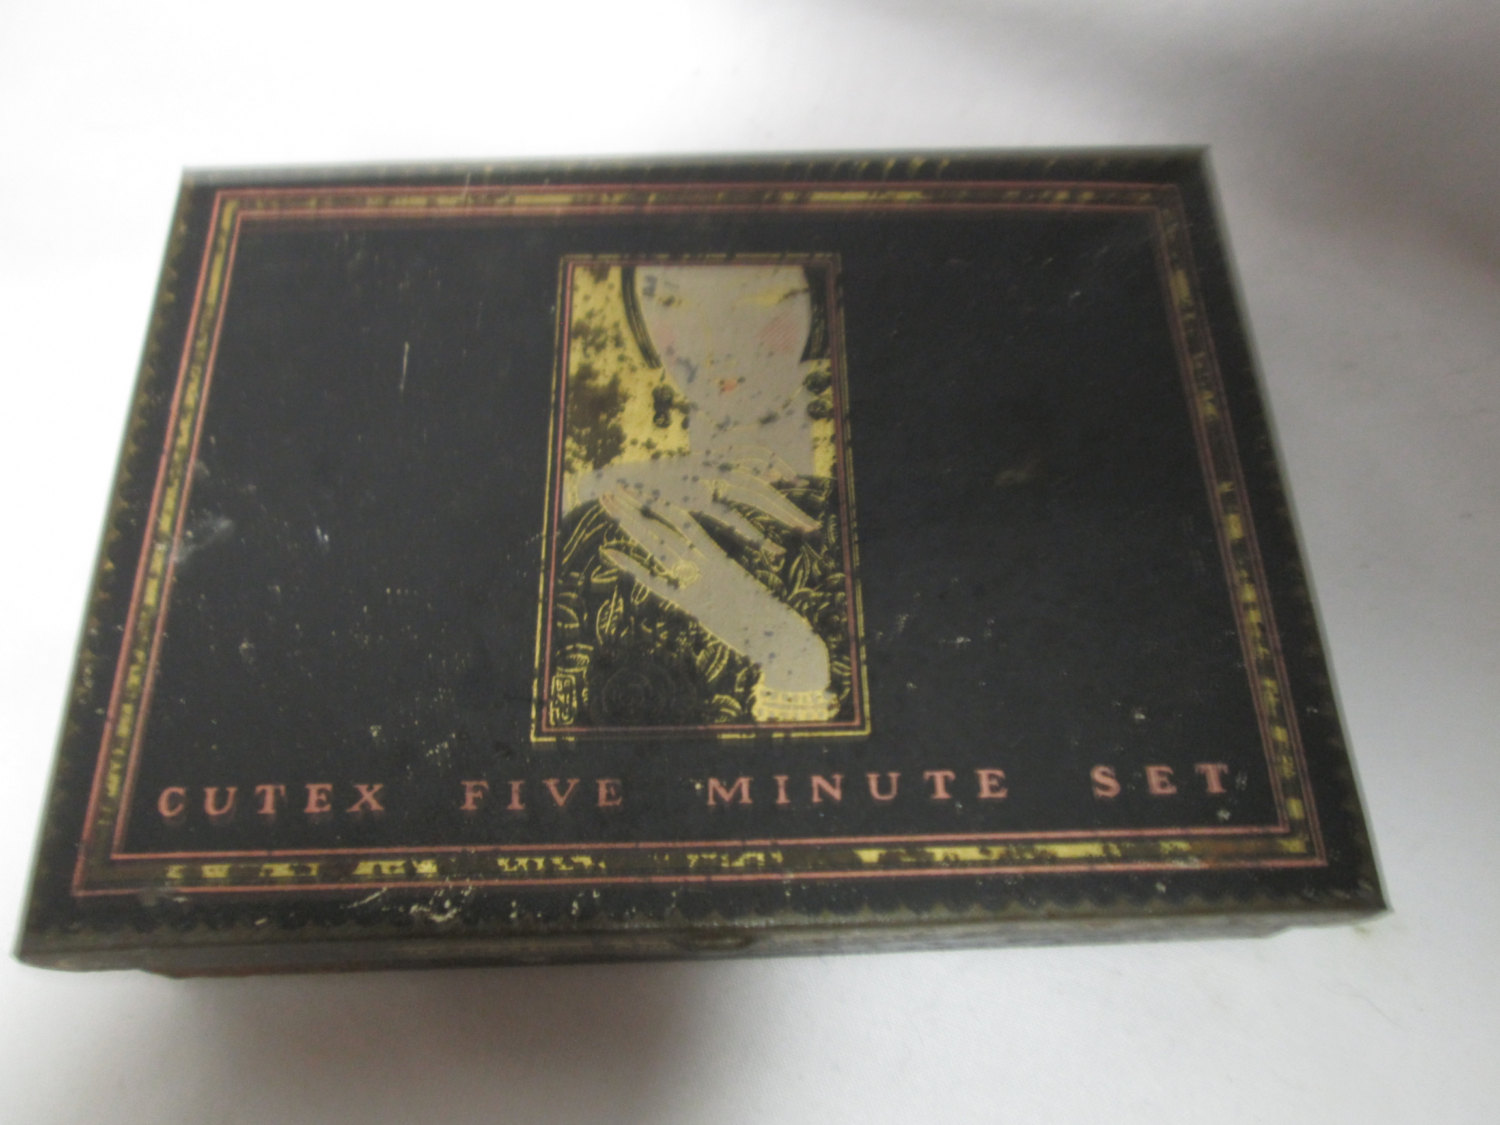 Antique Cutex Nail Five Minute Set Box Nail polish tin turn of the century metal box Art Deco Style Figurine